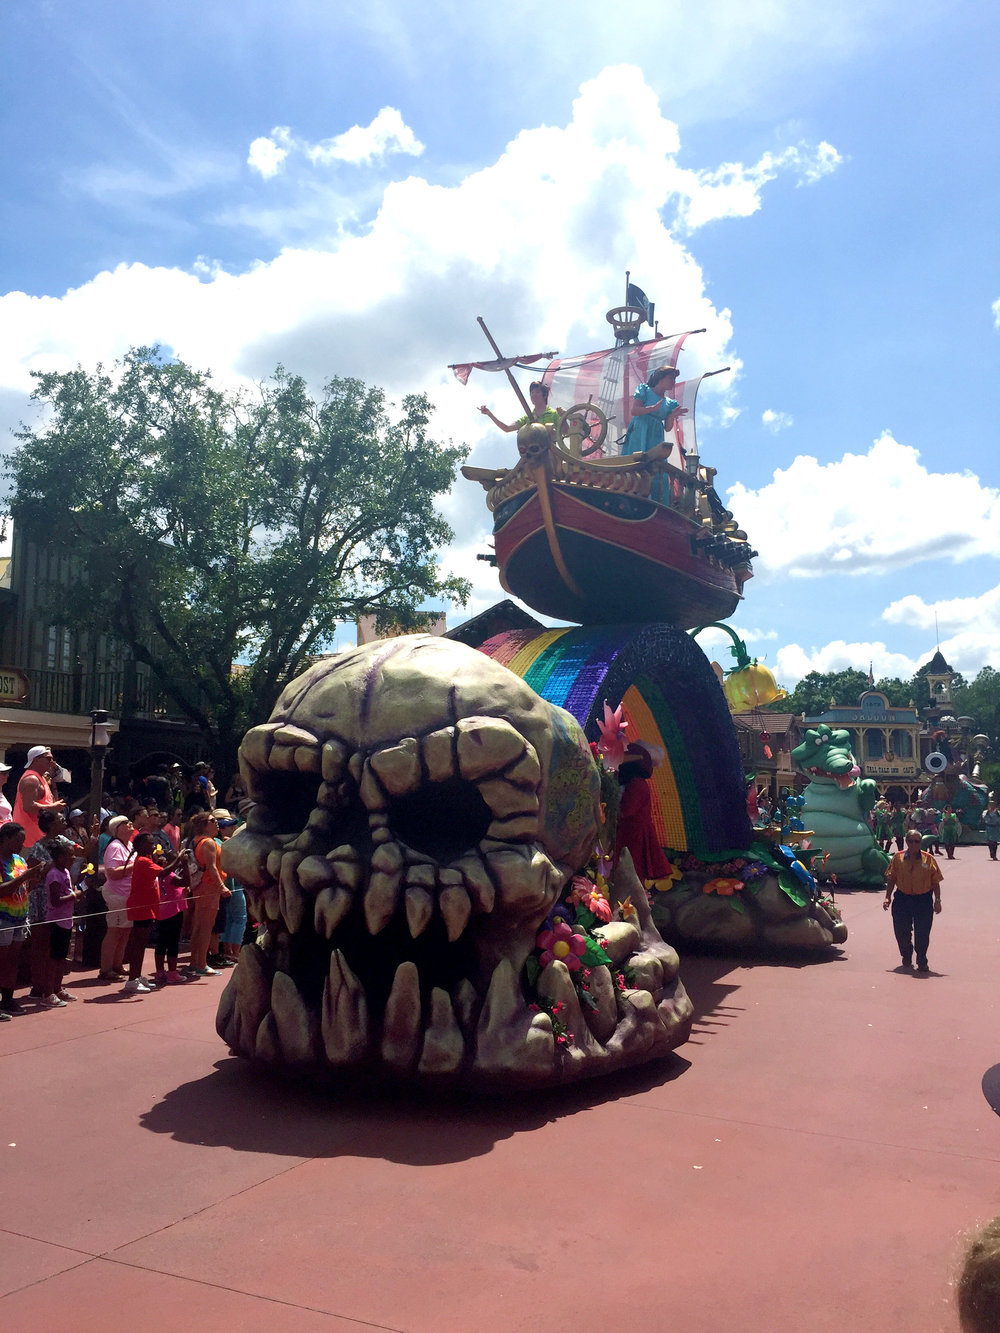 The Peter Pan float is designed to encompass some of the best sights of Neverland, including Skull Rock, the Jolly Roger, and Pixie Hollow.